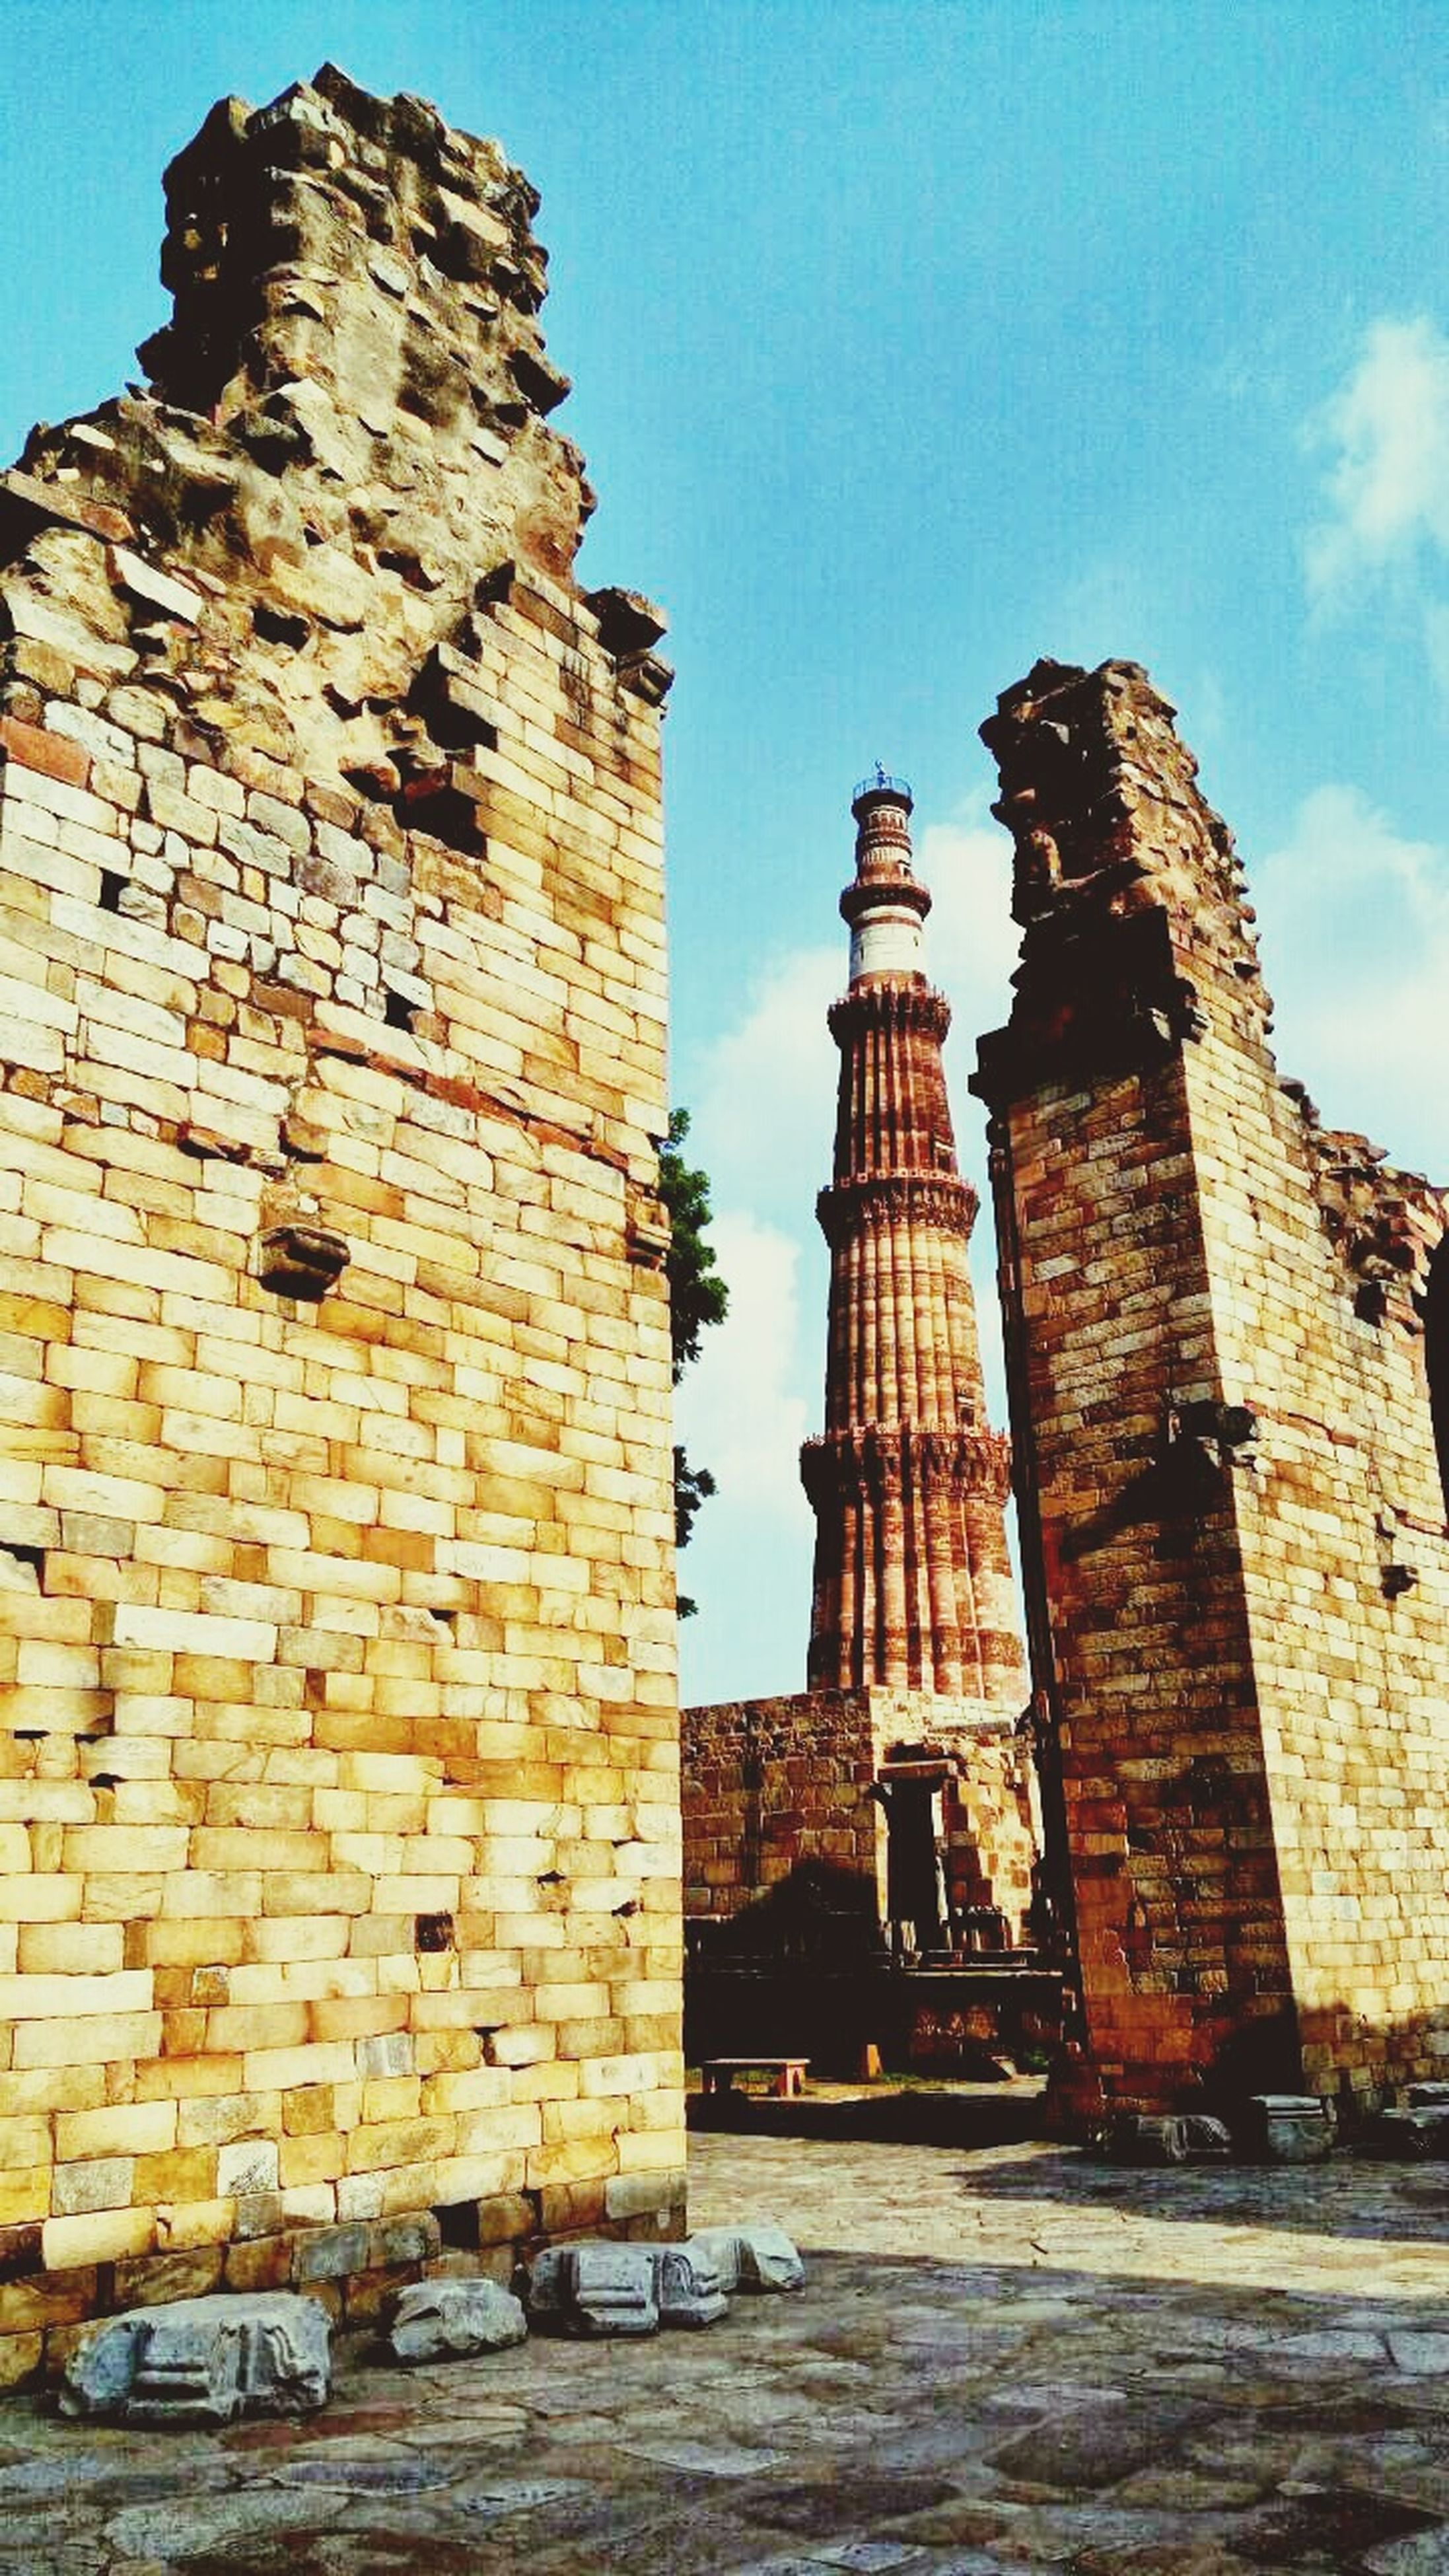 architecture, built structure, building exterior, old ruin, history, brick wall, old, tower, damaged, sky, medieval, the past, travel destinations, ancient, ruined, blue, famous place, outdoors, brick, deterioration, day, weathered, bad condition, fortified wall, fort